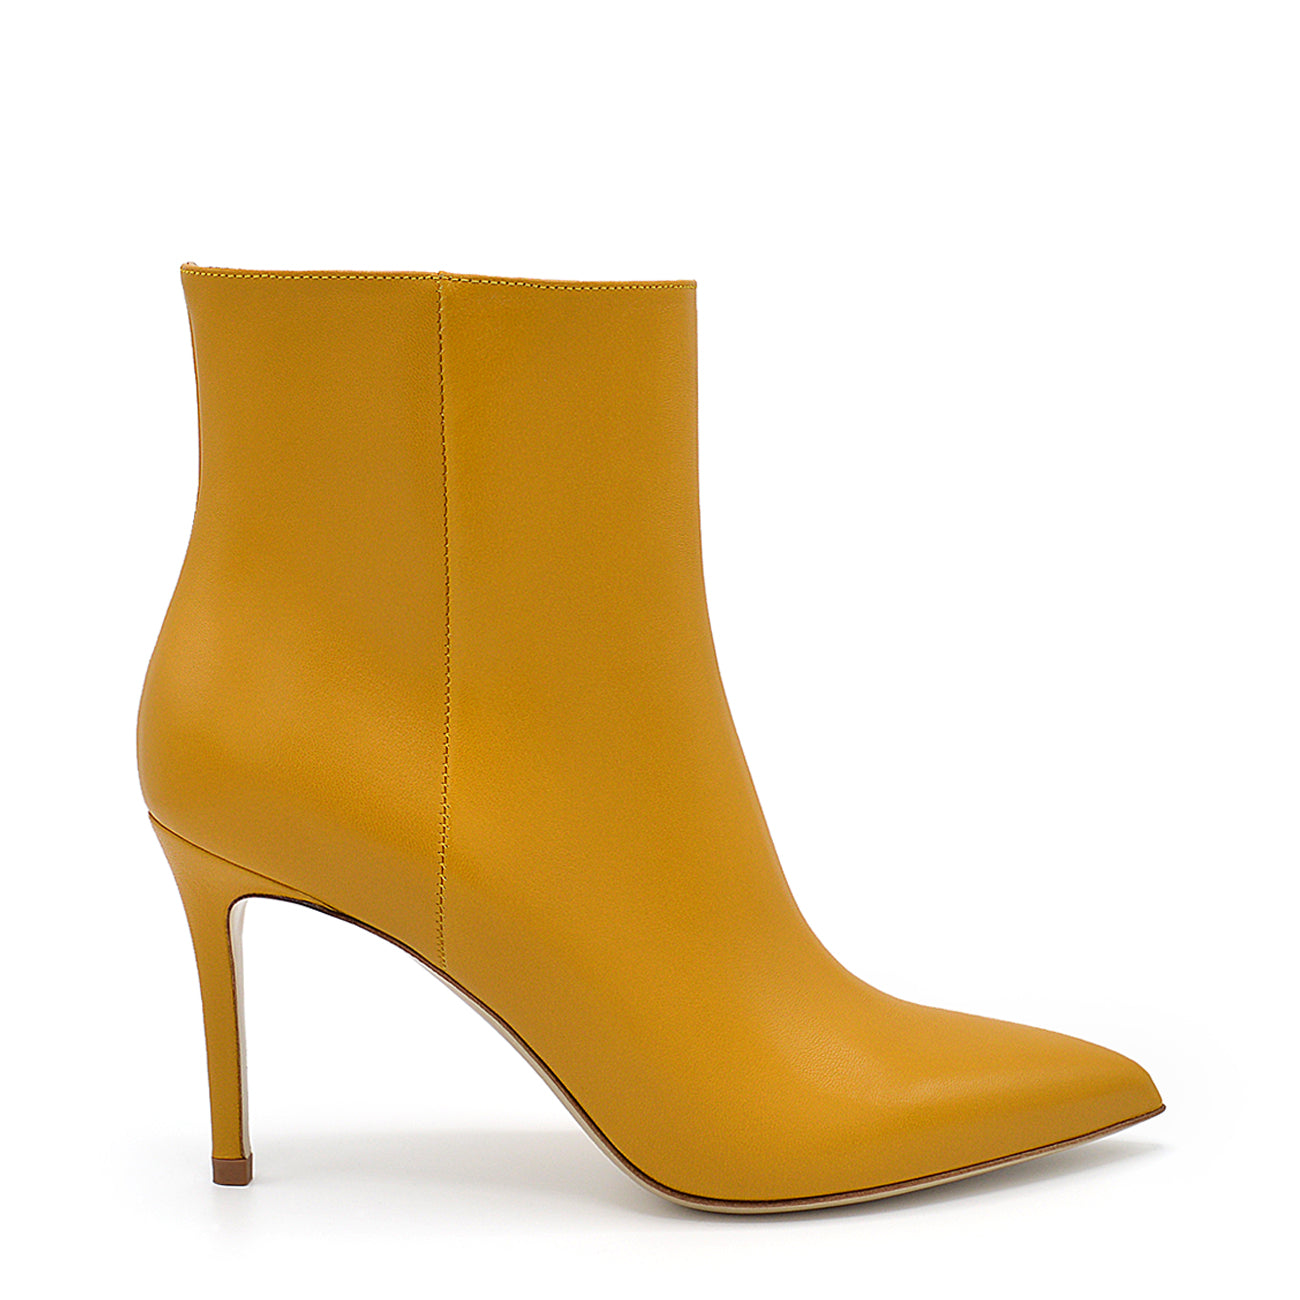 Debra. <br> Mustard yellow nappa leather ankle boots